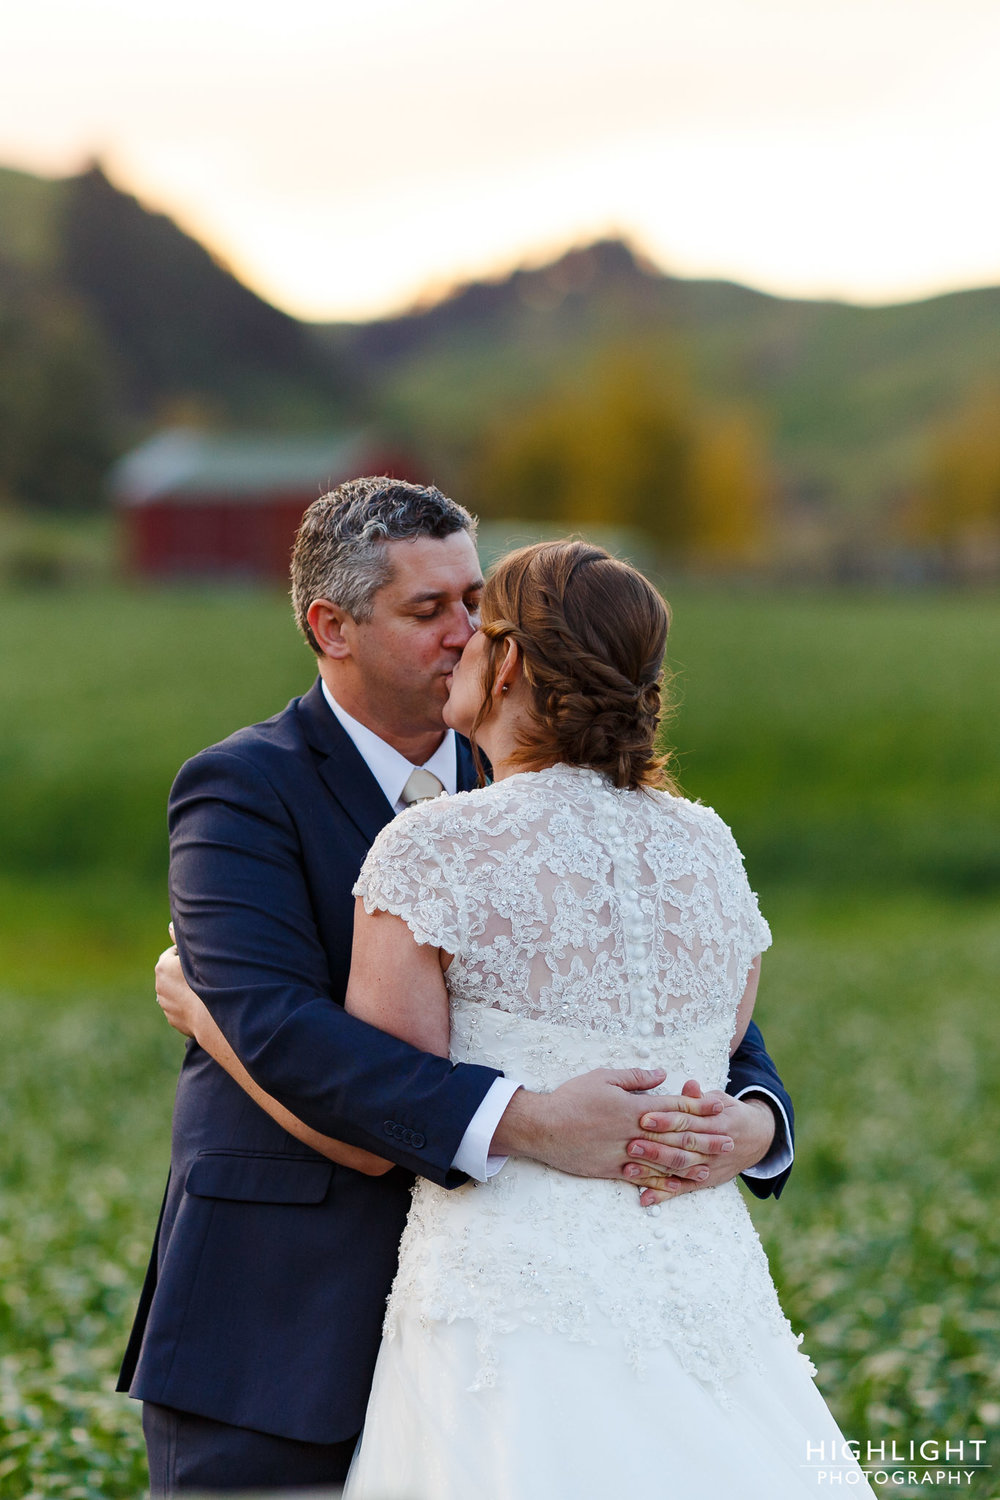 highlight_wedding_photography_palmerston_north_manawatu_makoura_lodge-102.jpg